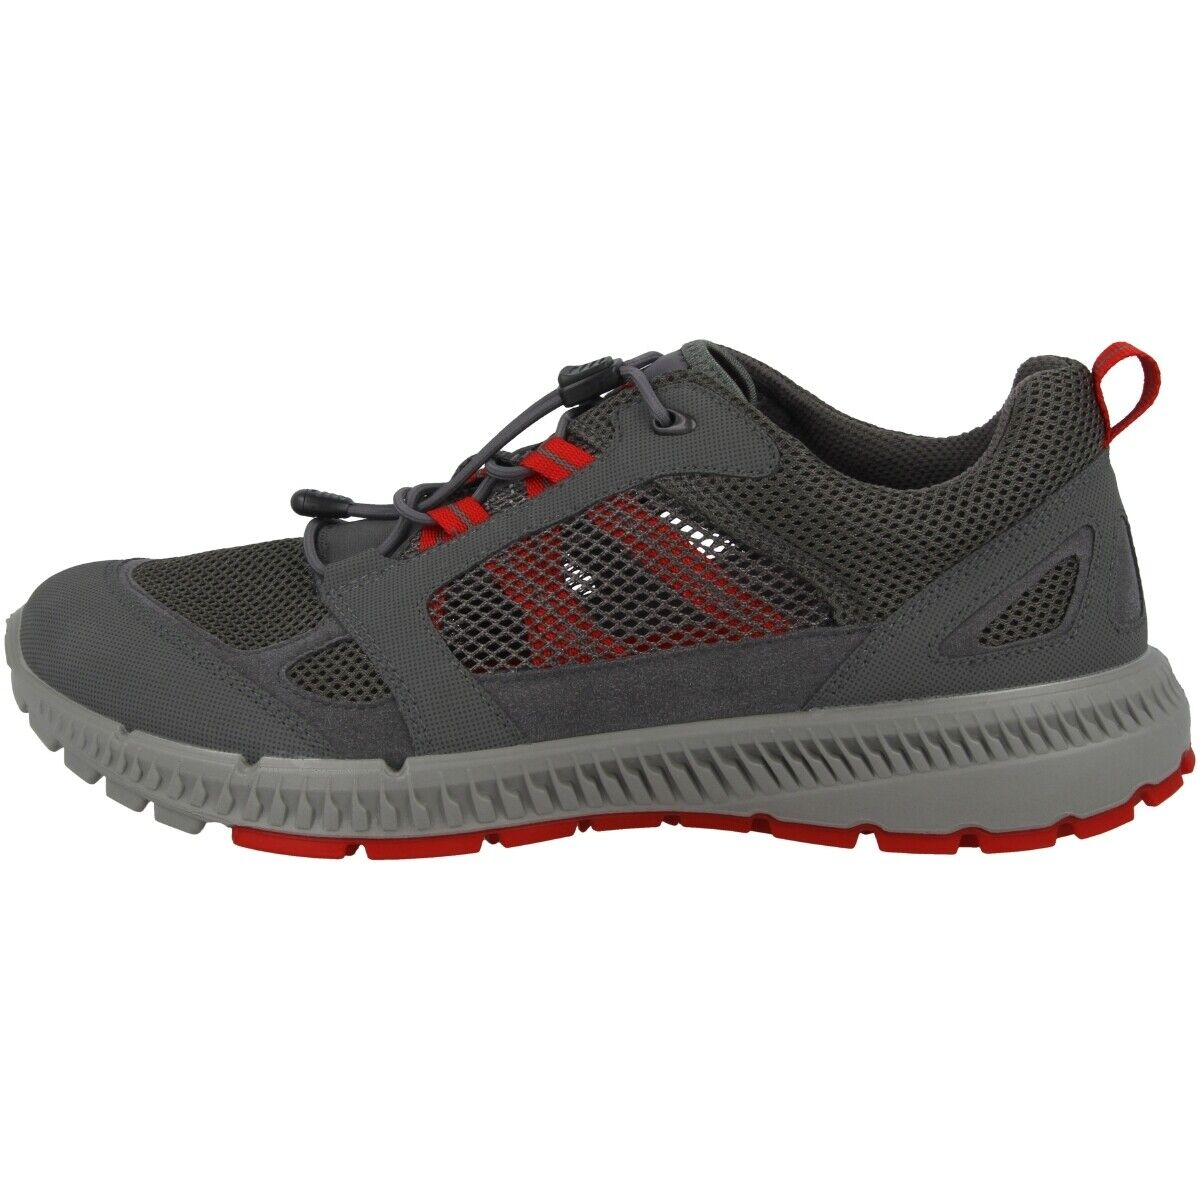 Ecco Ecco Ecco Terracruise II Schuhe Trekking Outdoor Turnschuhe dark shadow 843014-56586  12d277